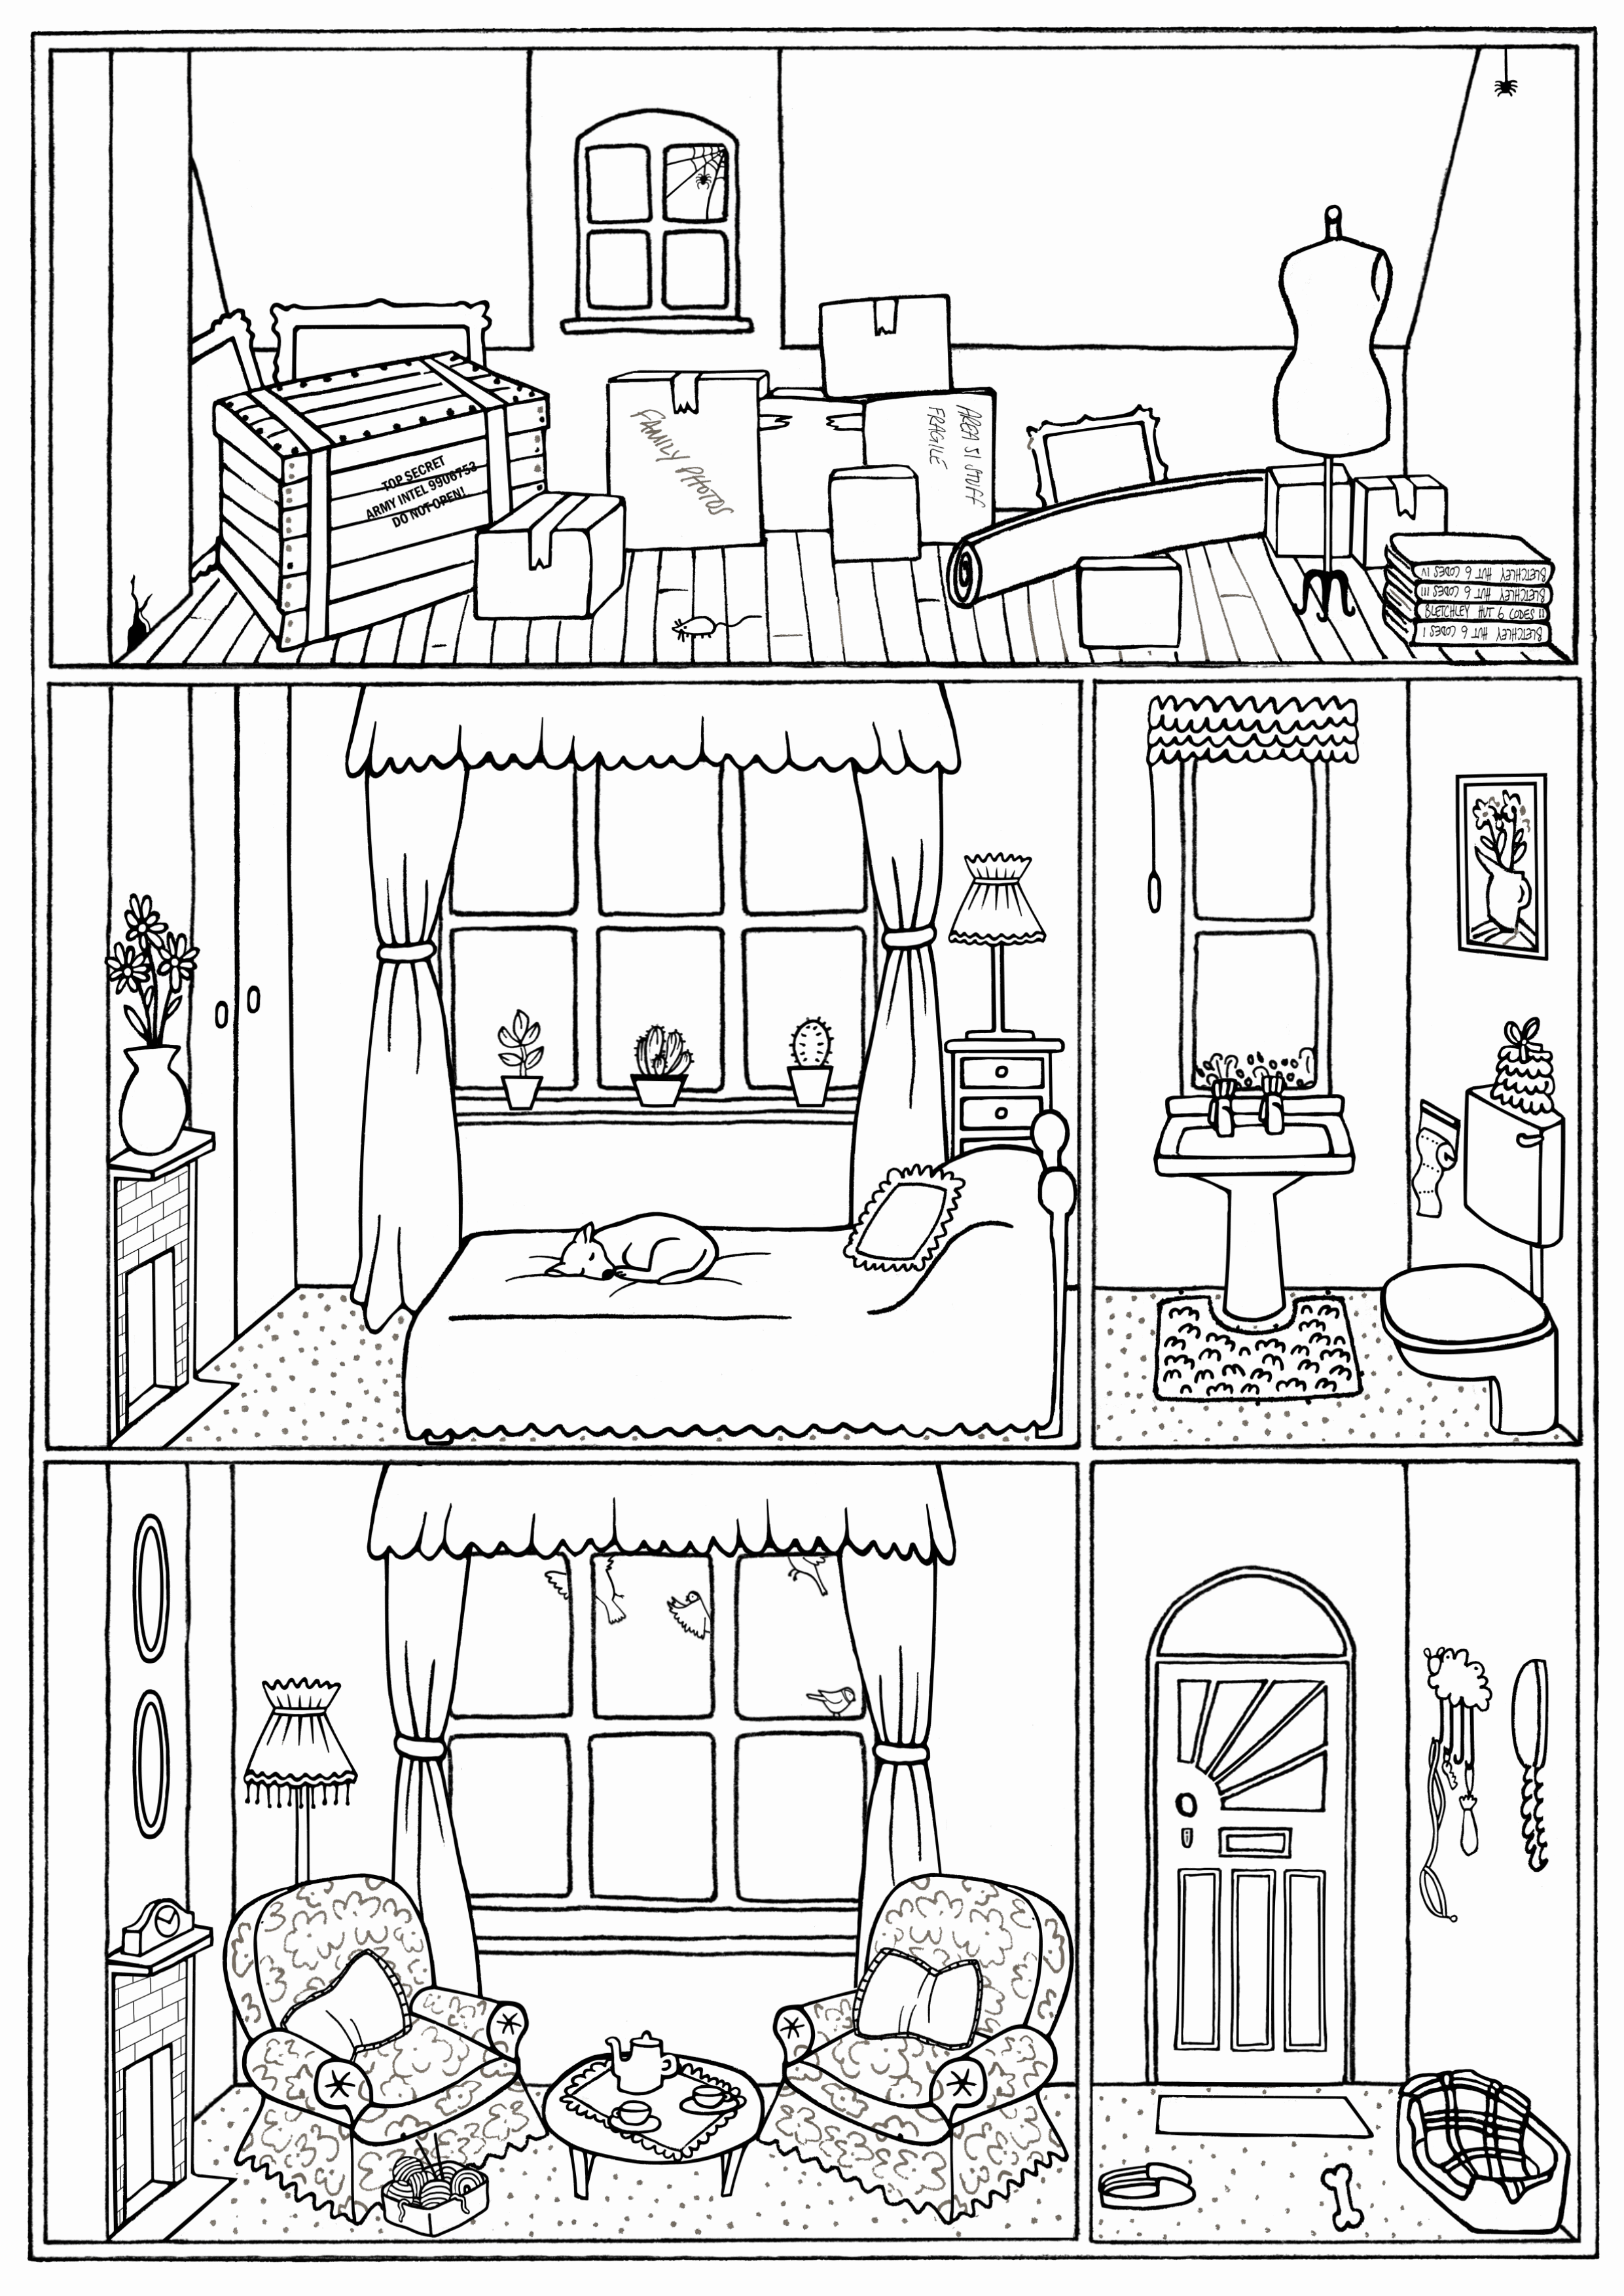 Interior House Colouring Page Printables Colouring Pages House Colouring Pages House Drawing For Kids